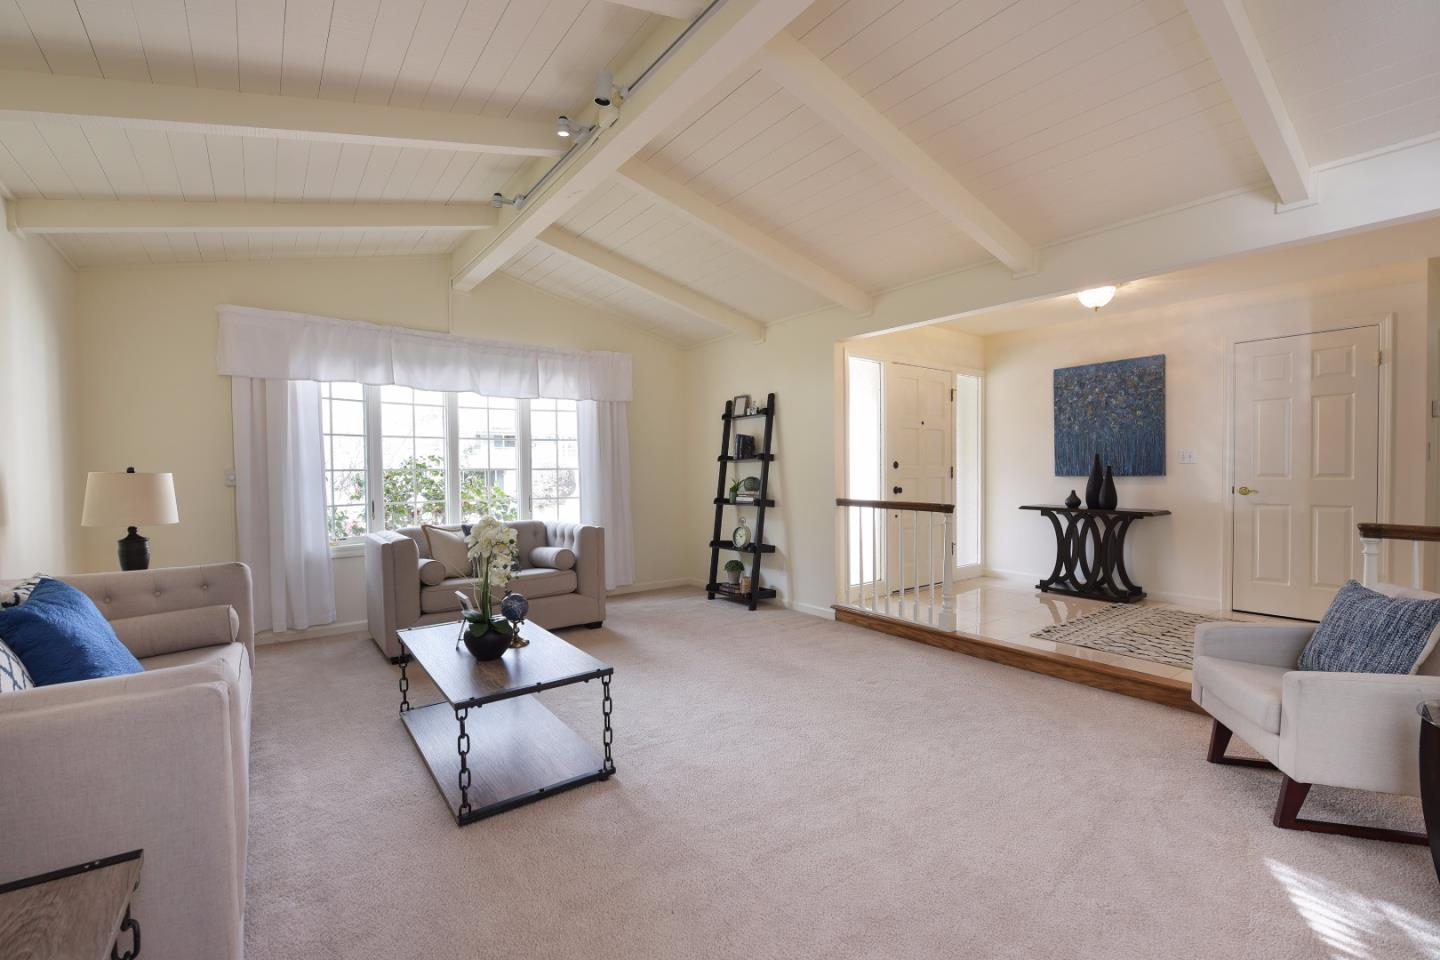 Additional photo for property listing at 20132 Knollwood Dr  SARATOGA, CALIFORNIA 95070